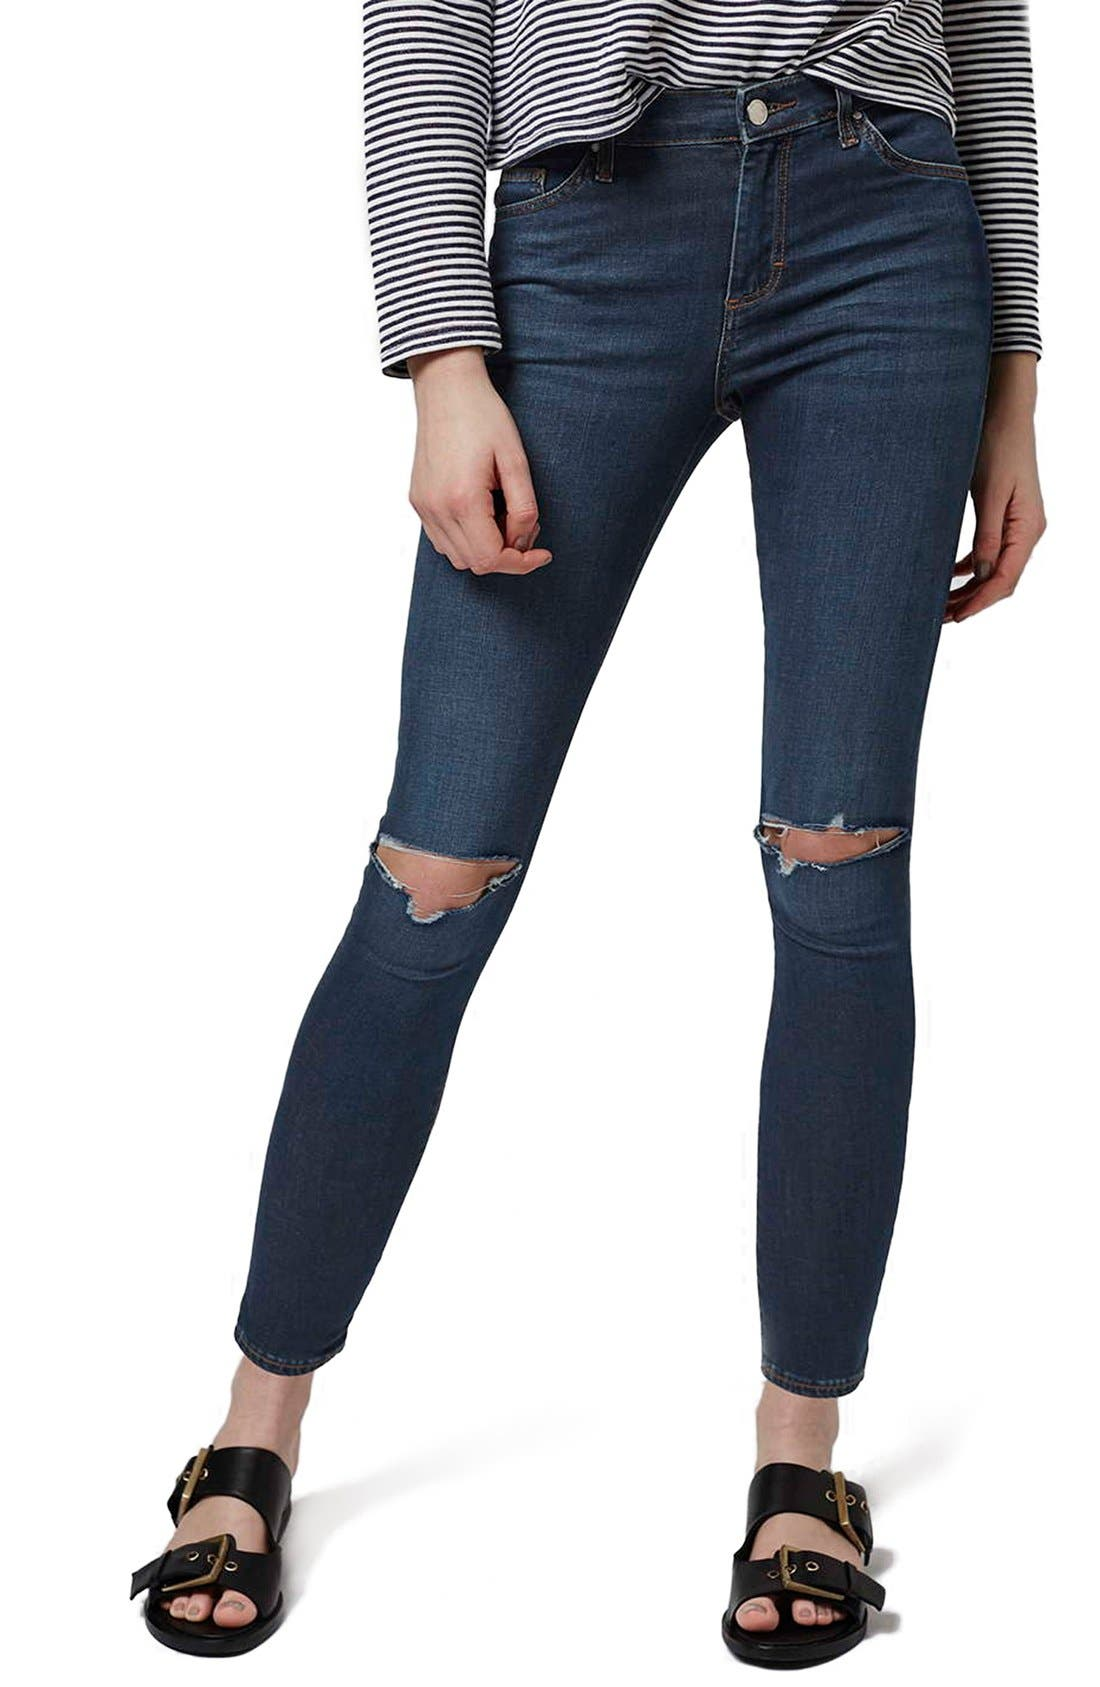 Alternate Image 1 Selected - Topshop 'Leigh' Vintage Ripped Jeans (Petite)